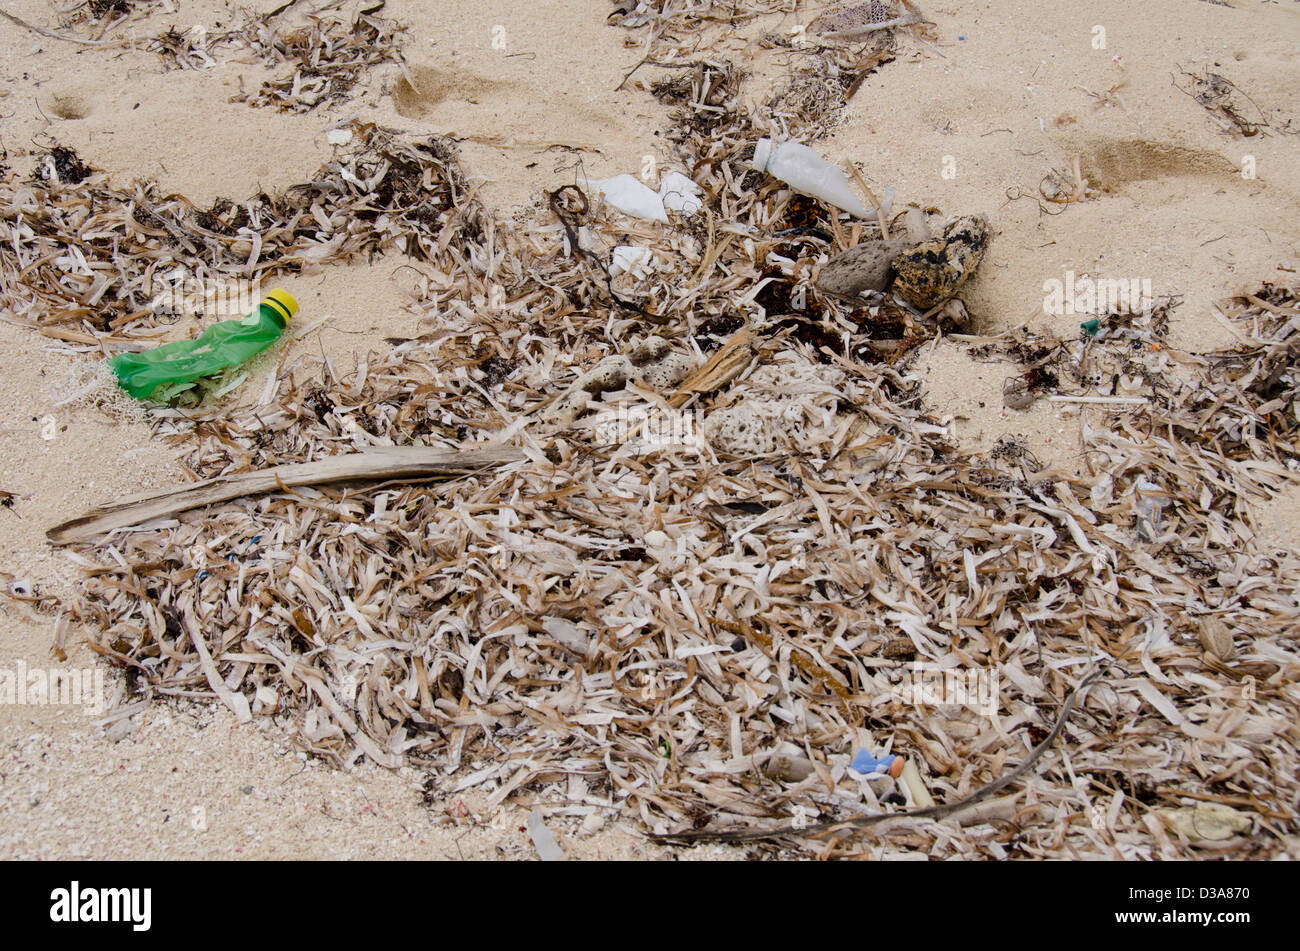 Belize, Caribbean Sea, Glover's Reef. Dirty polluted beach along the shore of Glover's Reef, a popular tourist - Stock Image